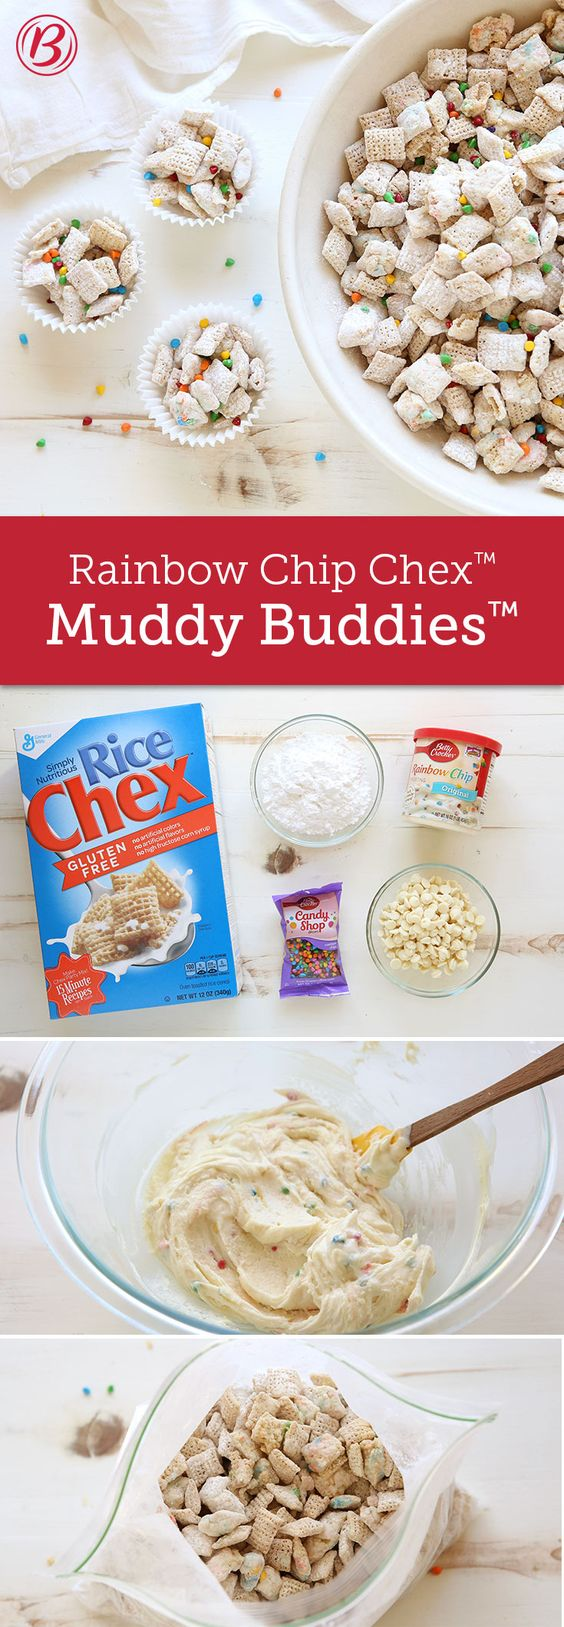 Crunchy Chex™ Muddy Buddies™ gets a seriously sweet upgrade with the addition of fan-favorite Rainbow Chip frosting. Tip: Look for white vanilla baking chips that contain cocoa butter. They'll melt easily and are less likely to scorch when heated.